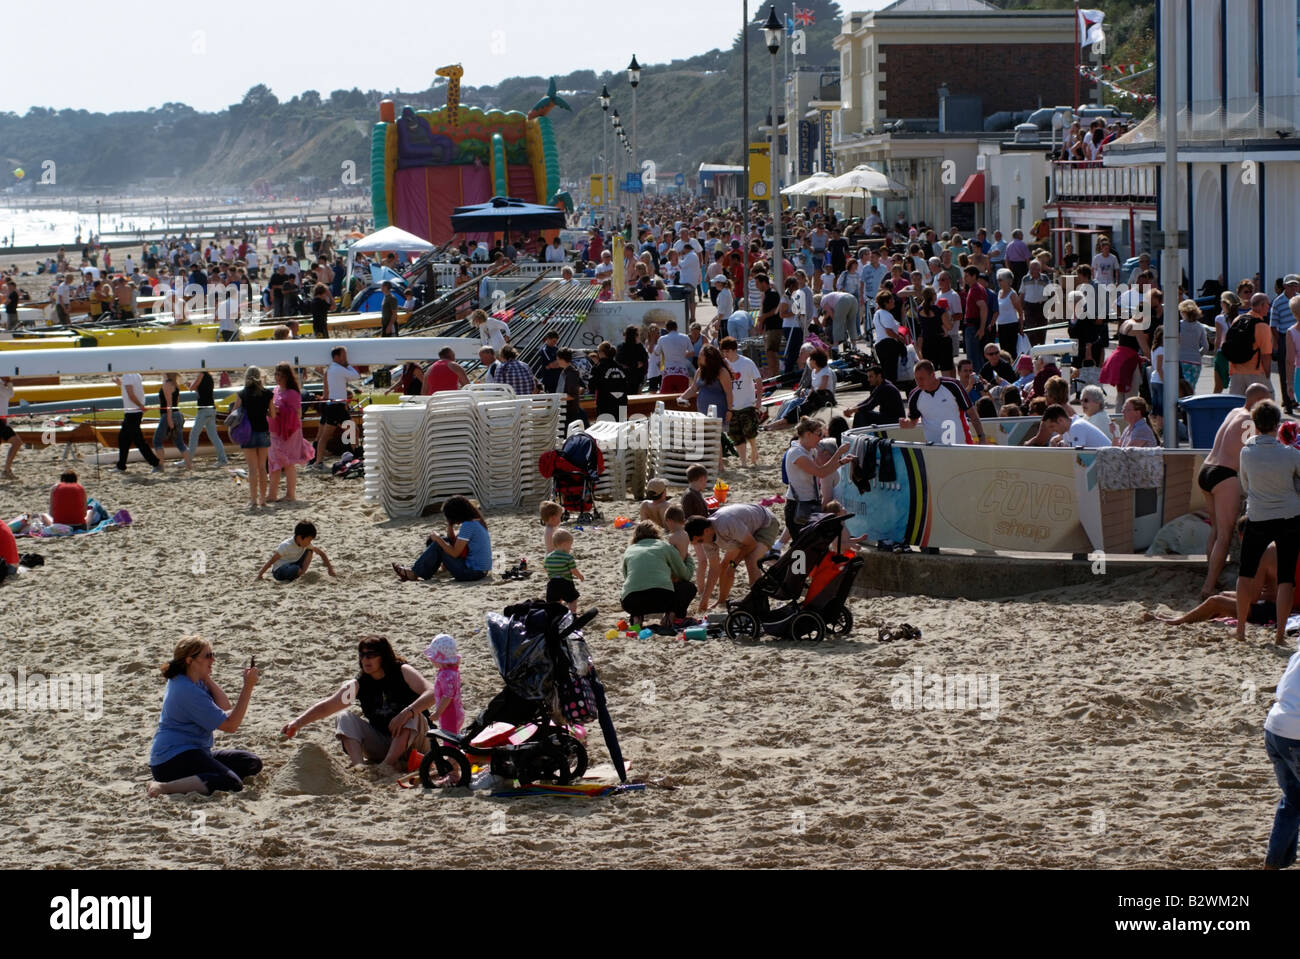 Crowded seaside resort the seafront at Bournemouth southern England UK - Stock Image